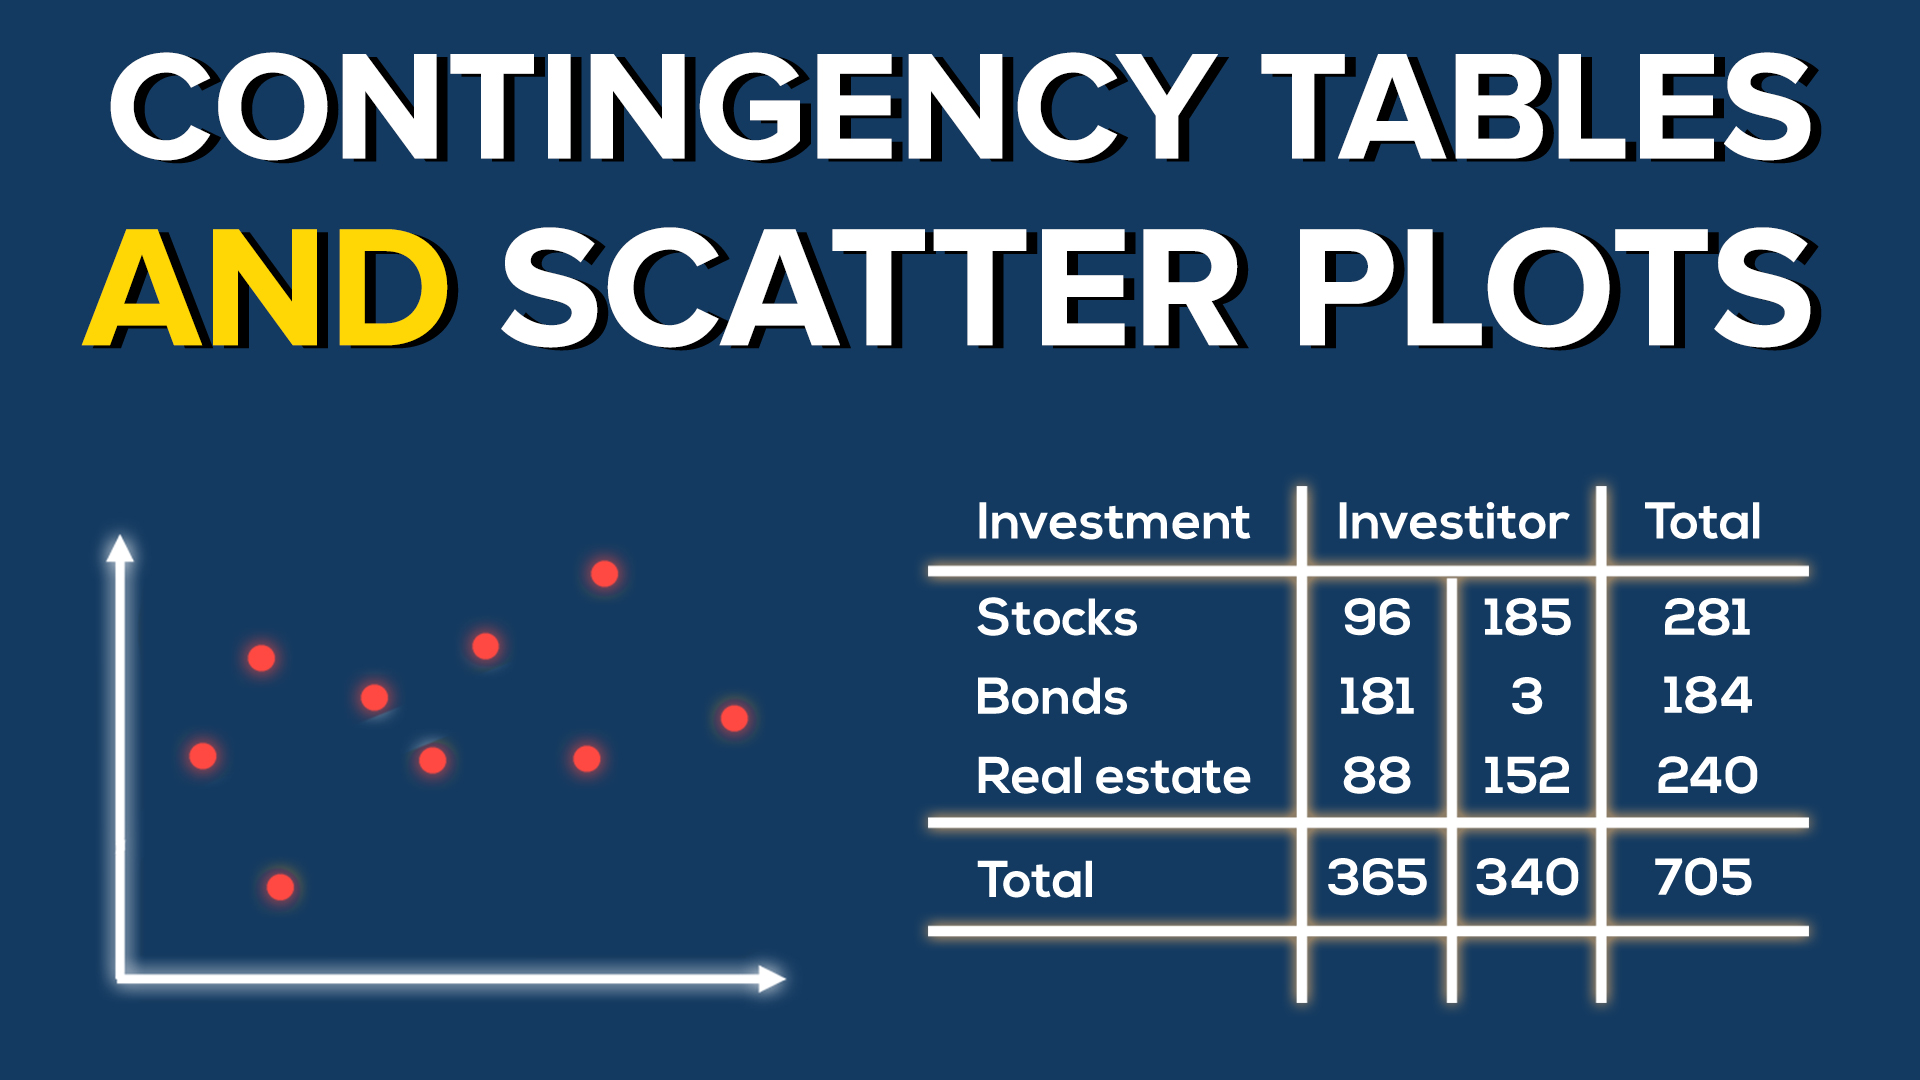 Visualizing Data with Contingency Tables and Scatter Plots